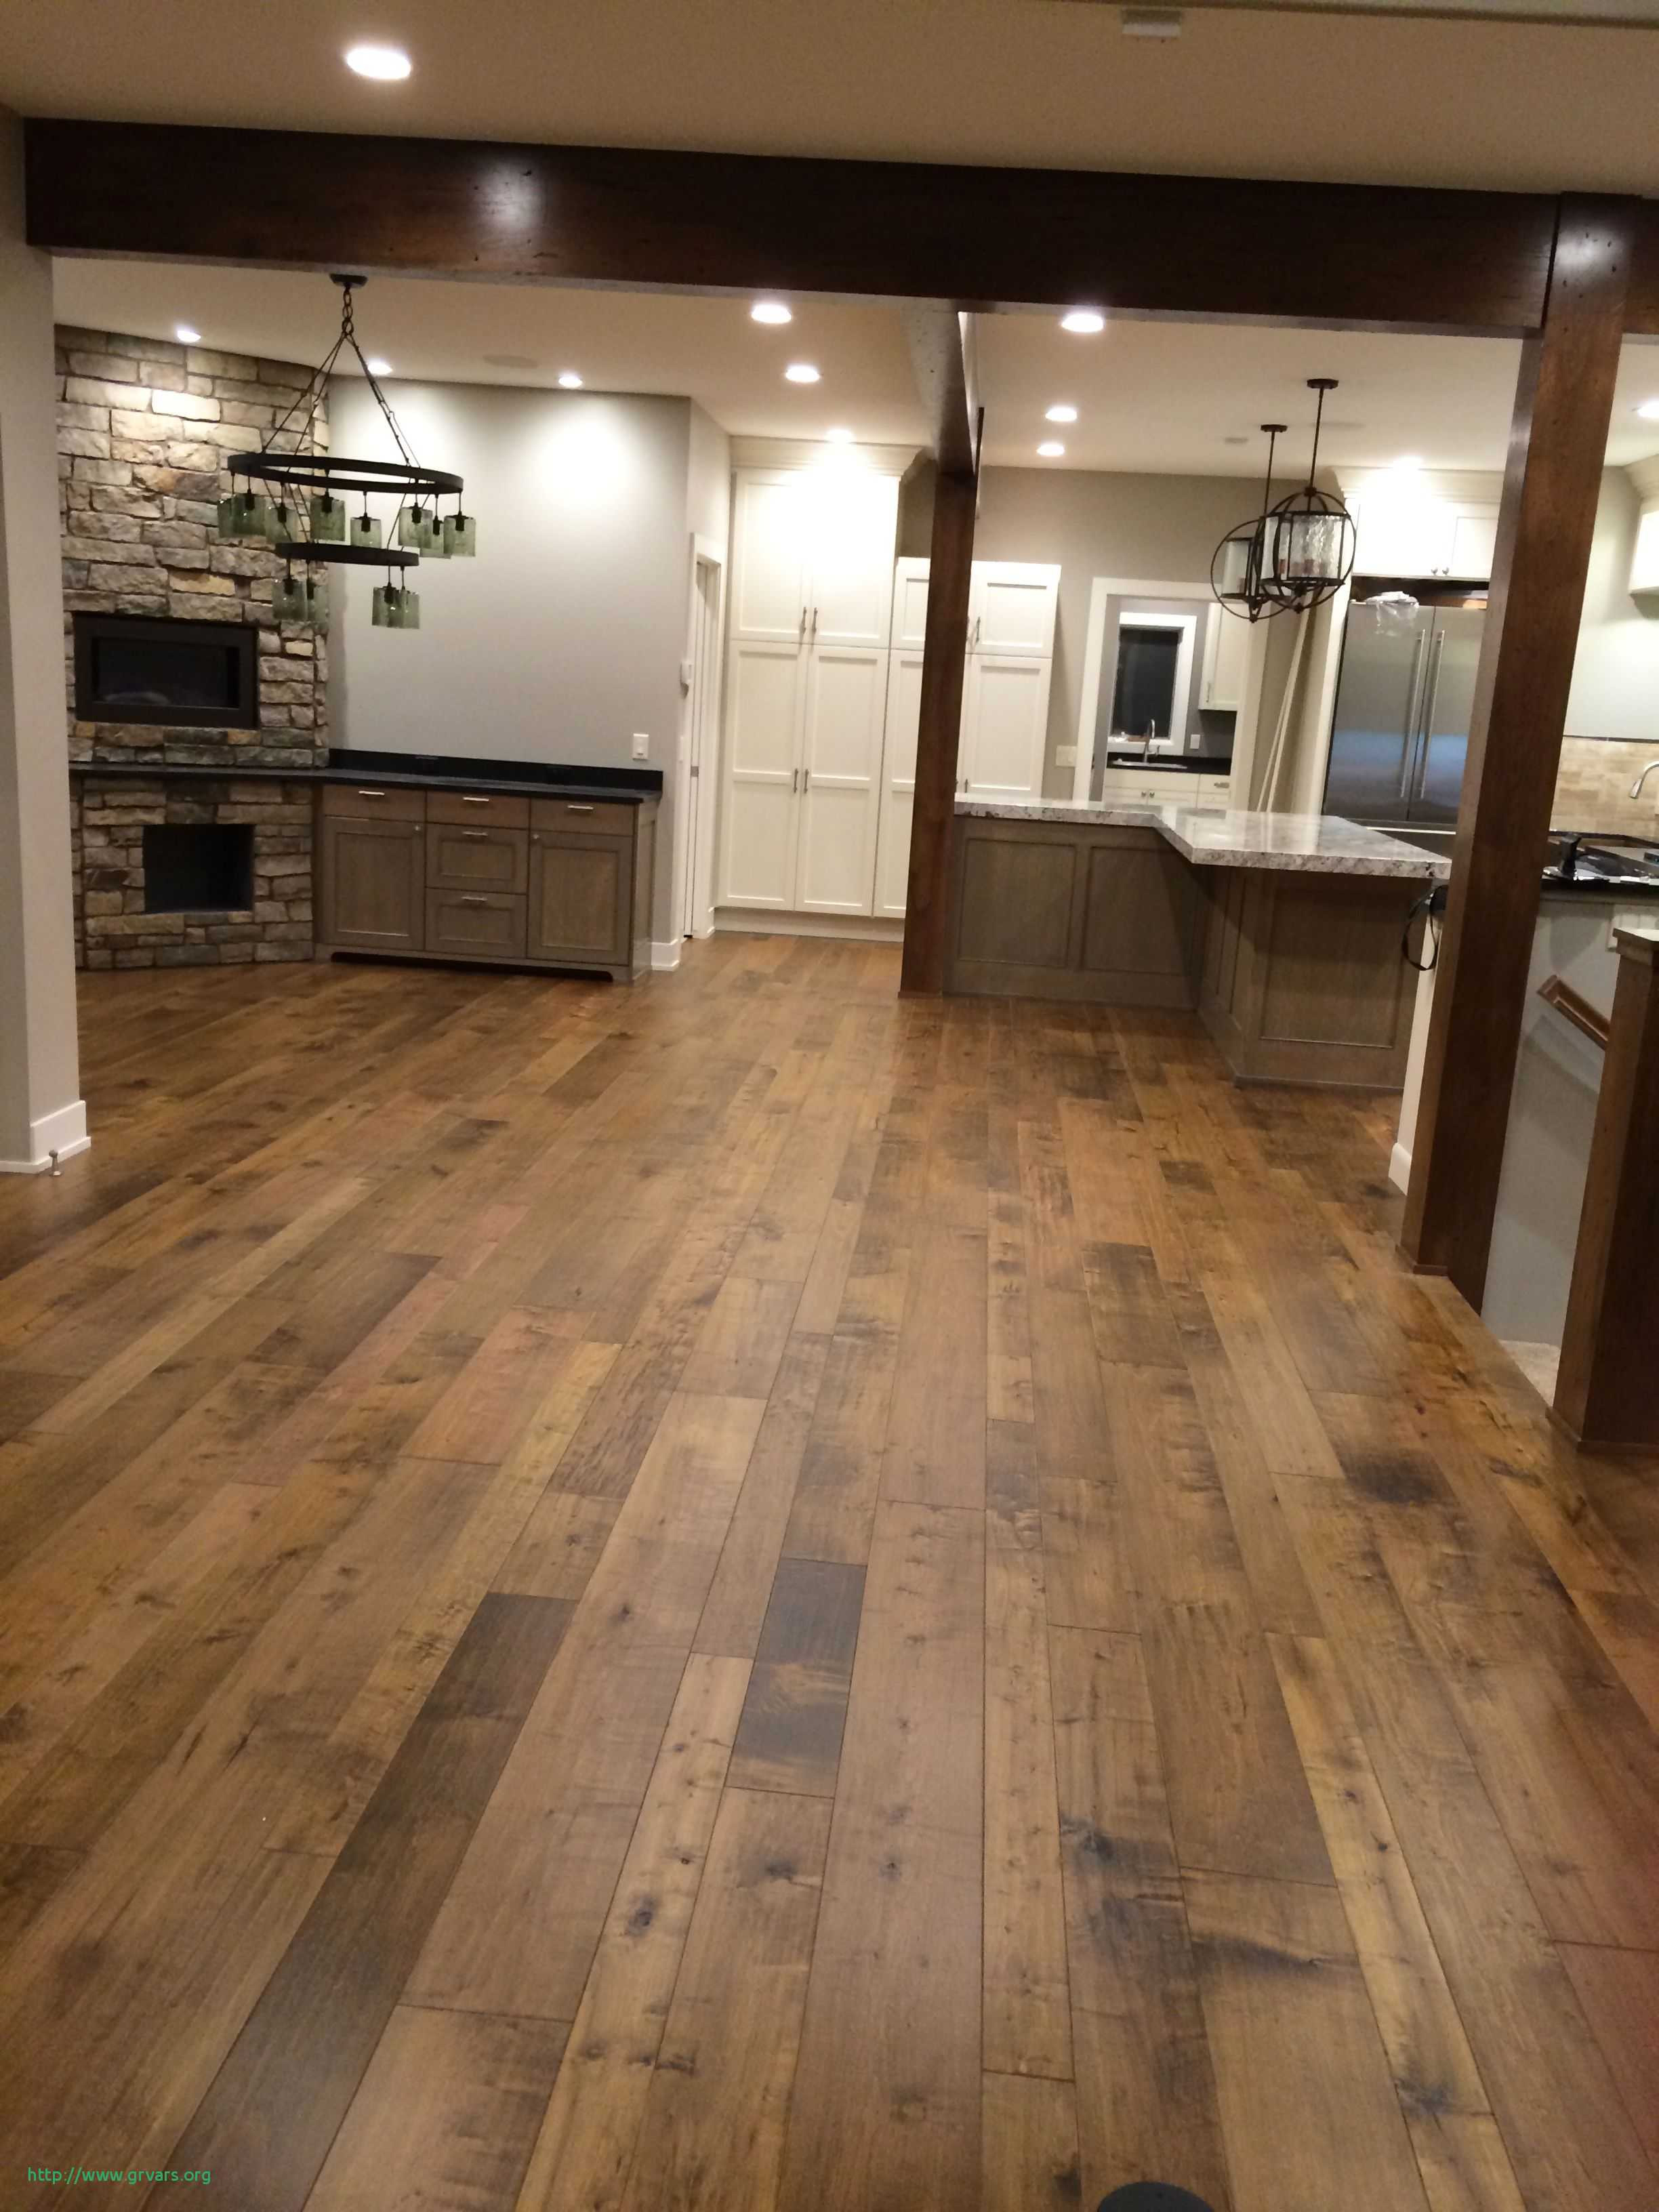 how to clean hardwood floors under carpet of how to restore hardwood floors under carpet charmant brazilian in how to restore hardwood floors under carpet a‰lagant monterey hardwood collection rooms and spaces